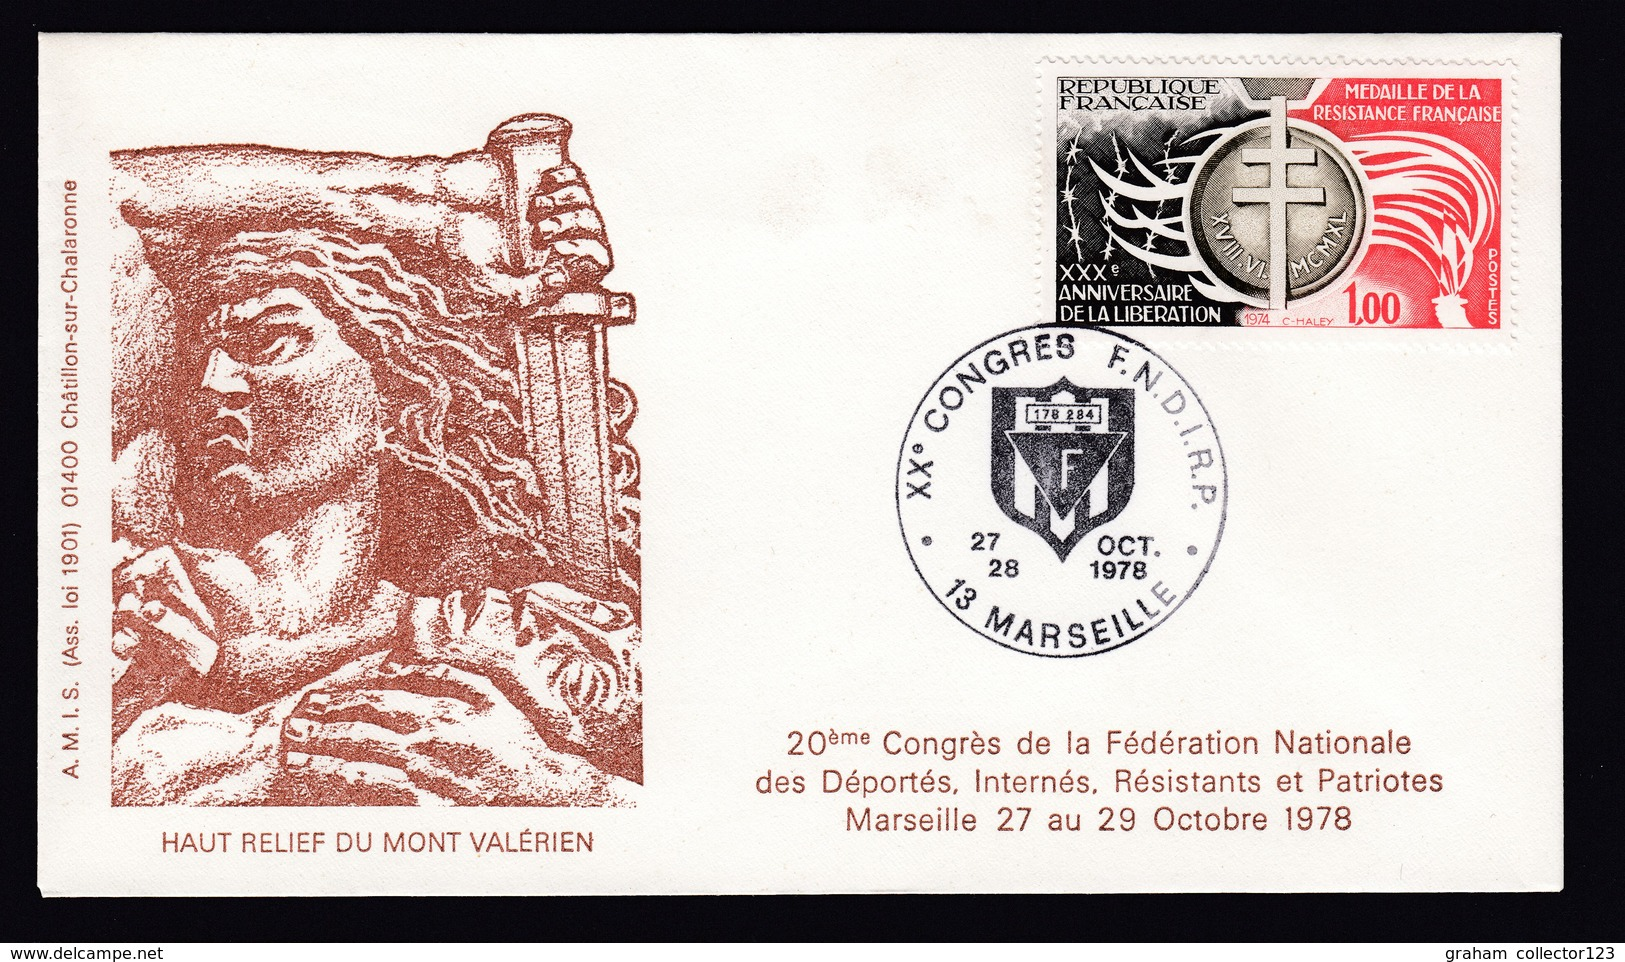 France French Cover Lettre 1978 France French Army Cover WW2 WWII Haut Relief Du Mont Valerien Marseille Postmark - Militaria